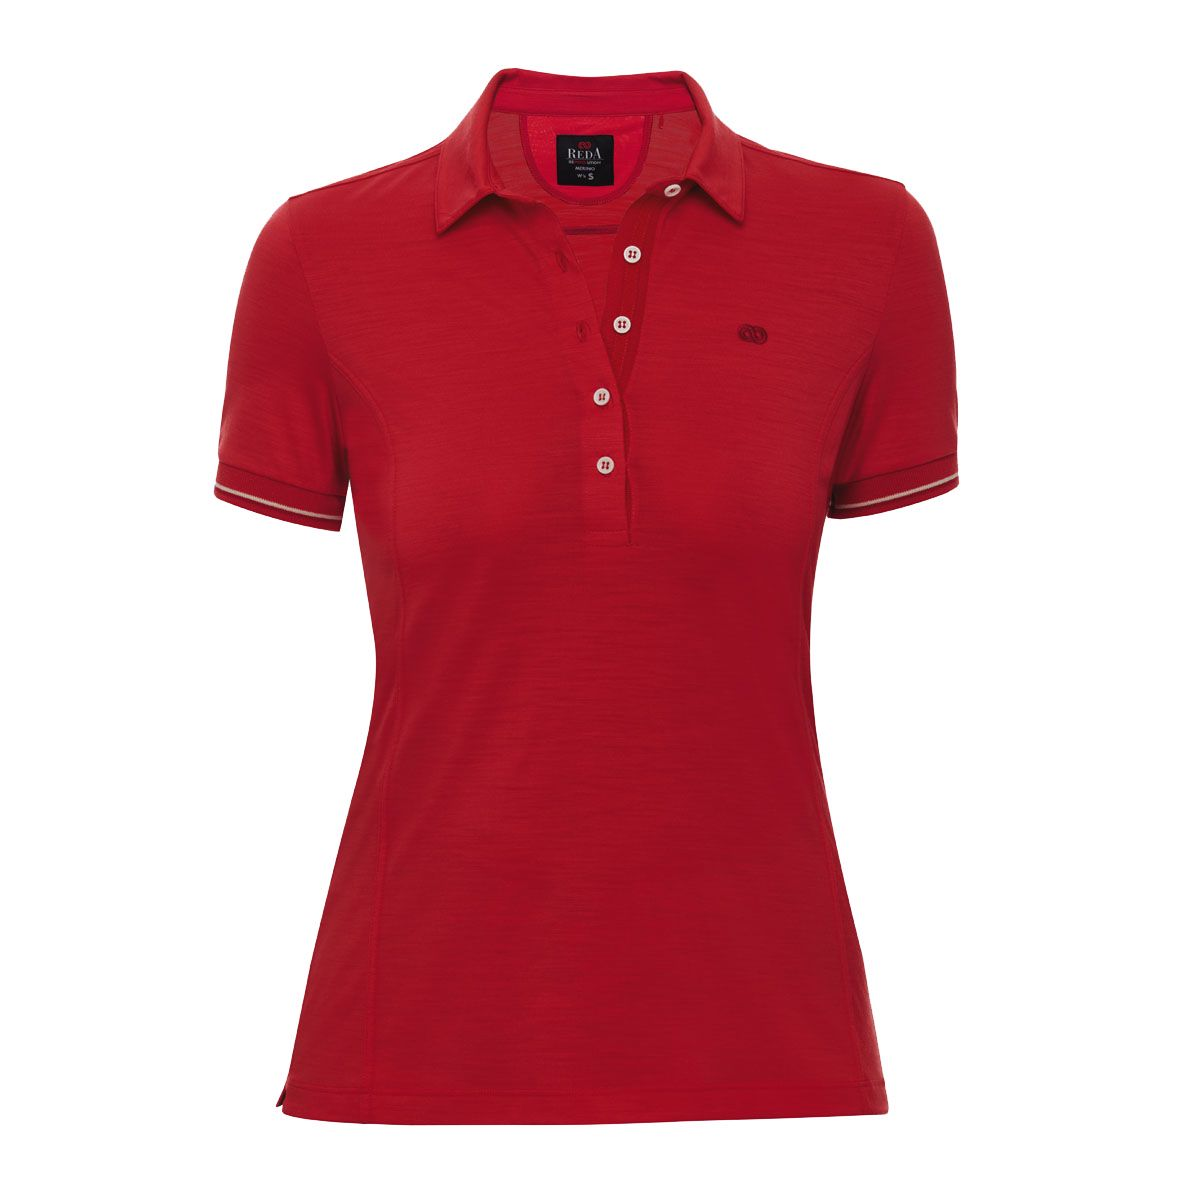 Rewoolution Damen Evert Polo Shirt (Größe M, Rot) | T-Shirts Merino > Damen